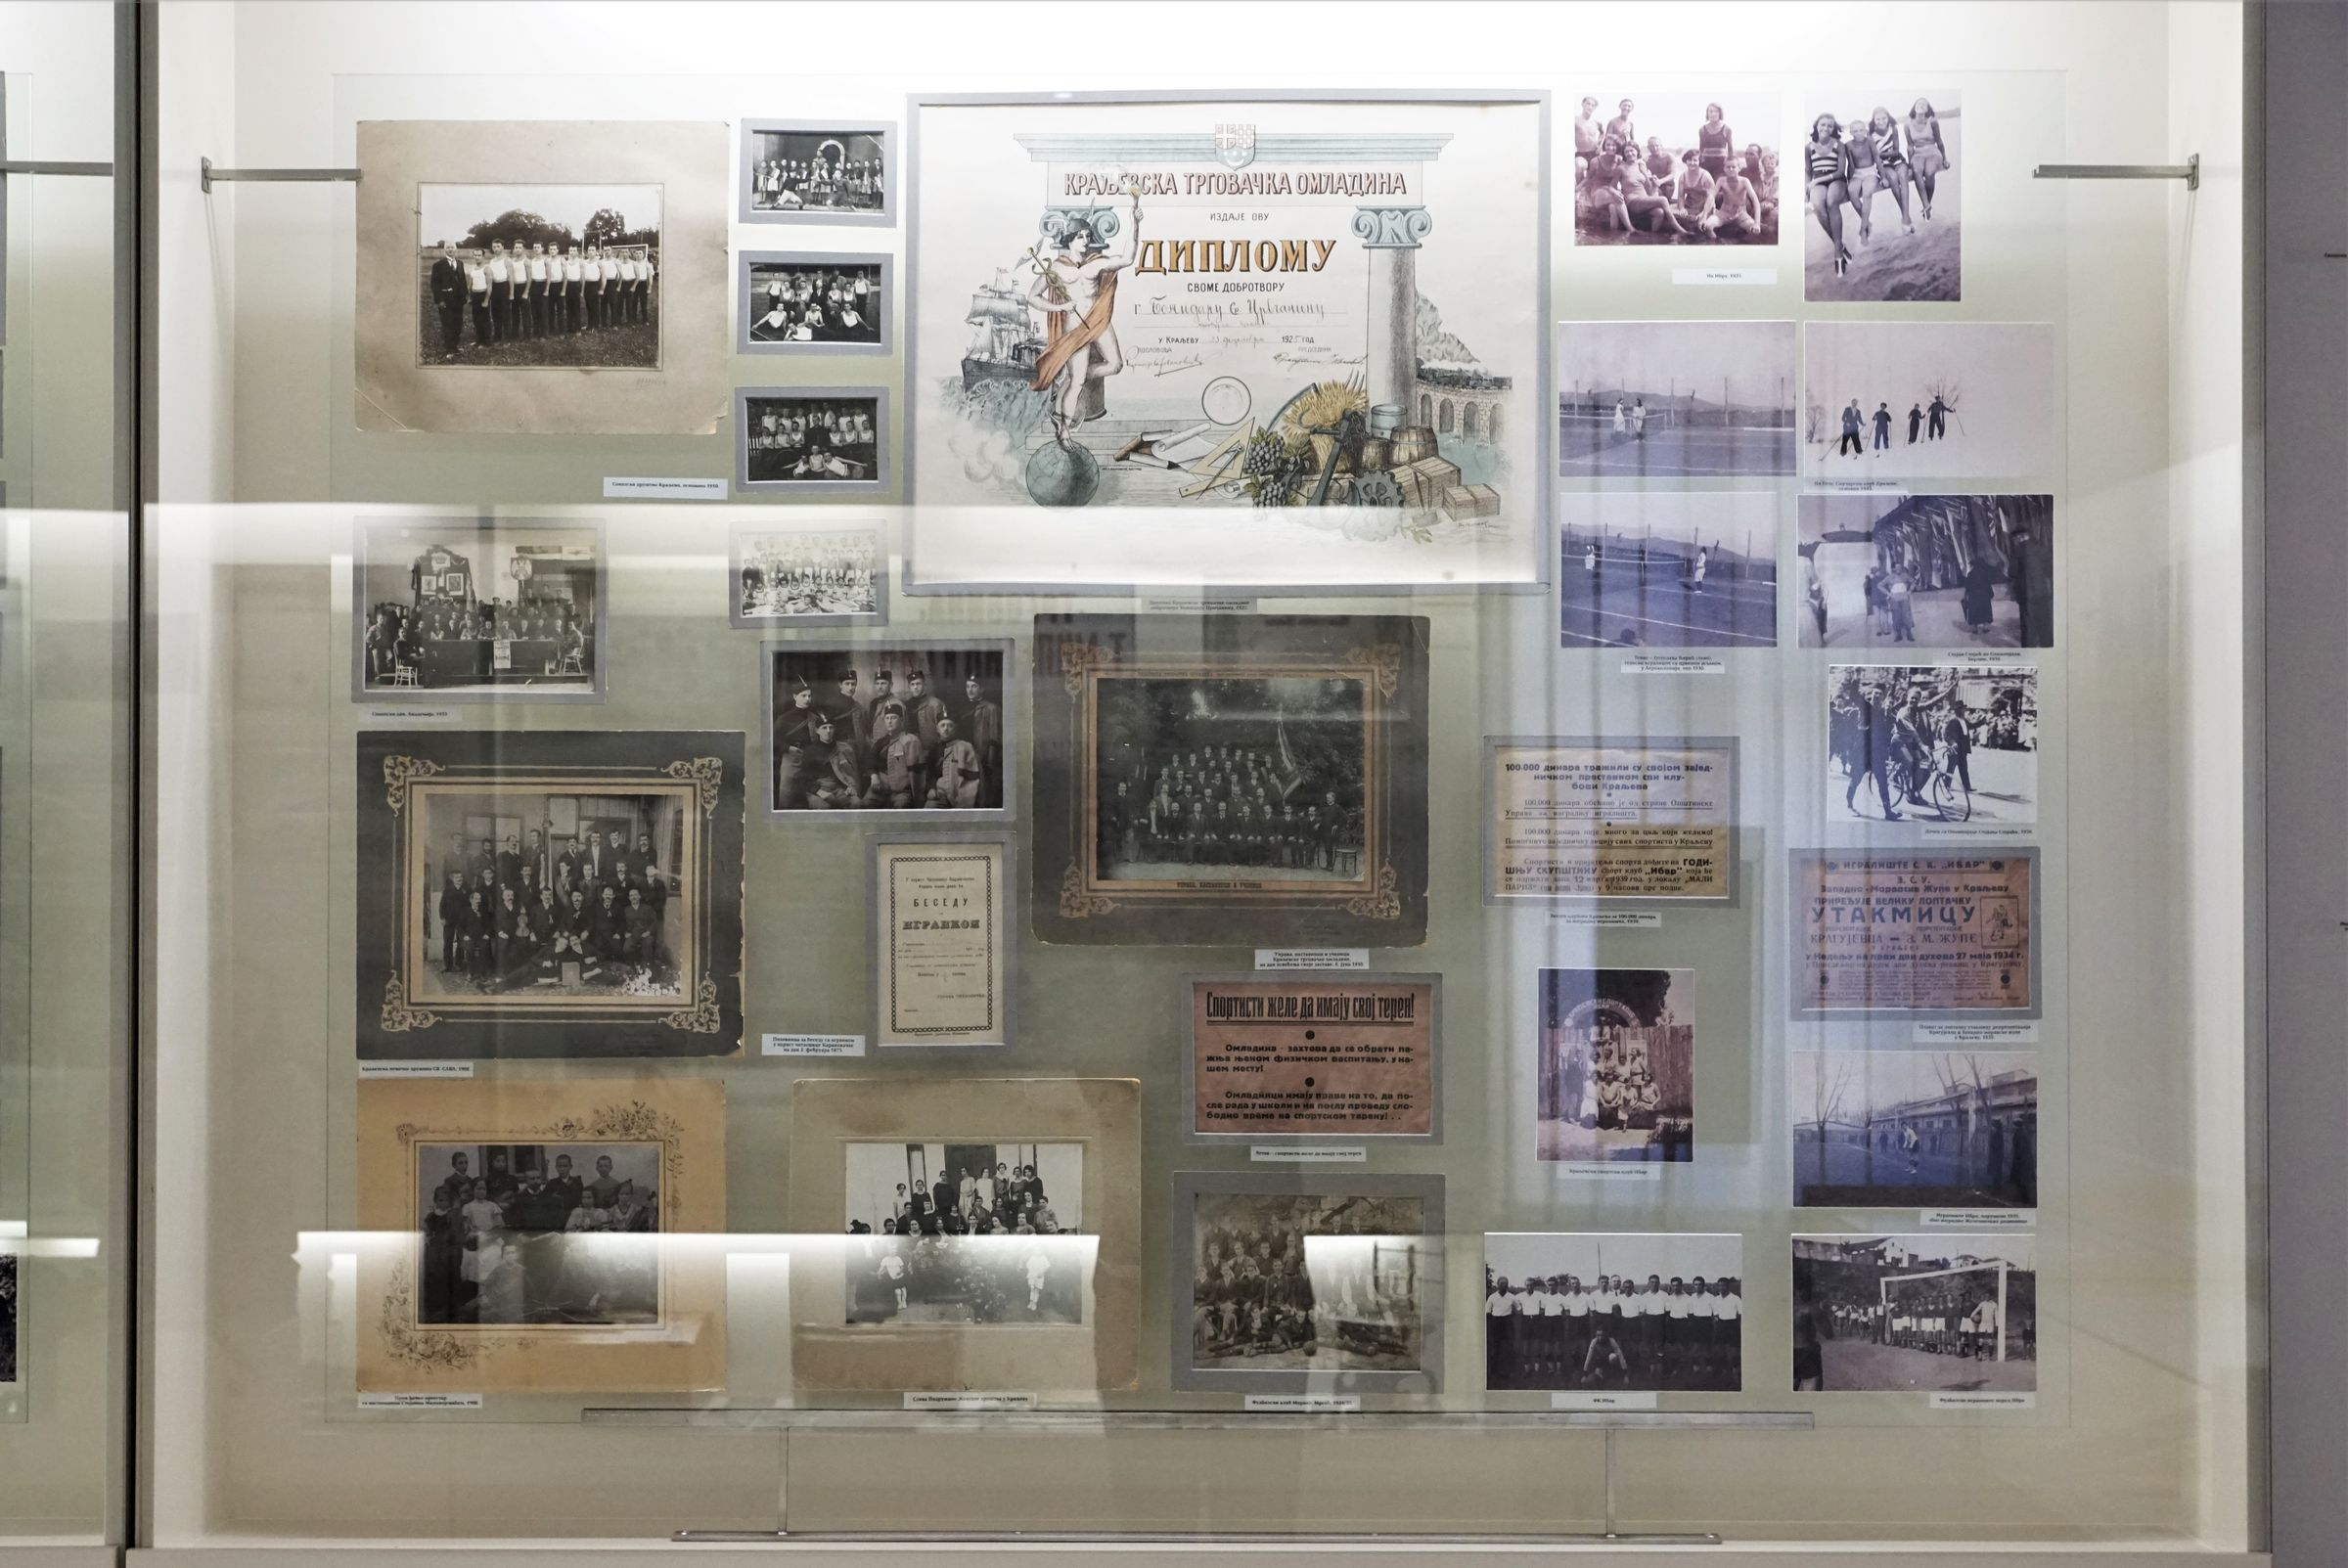 Display case dedicated to associations